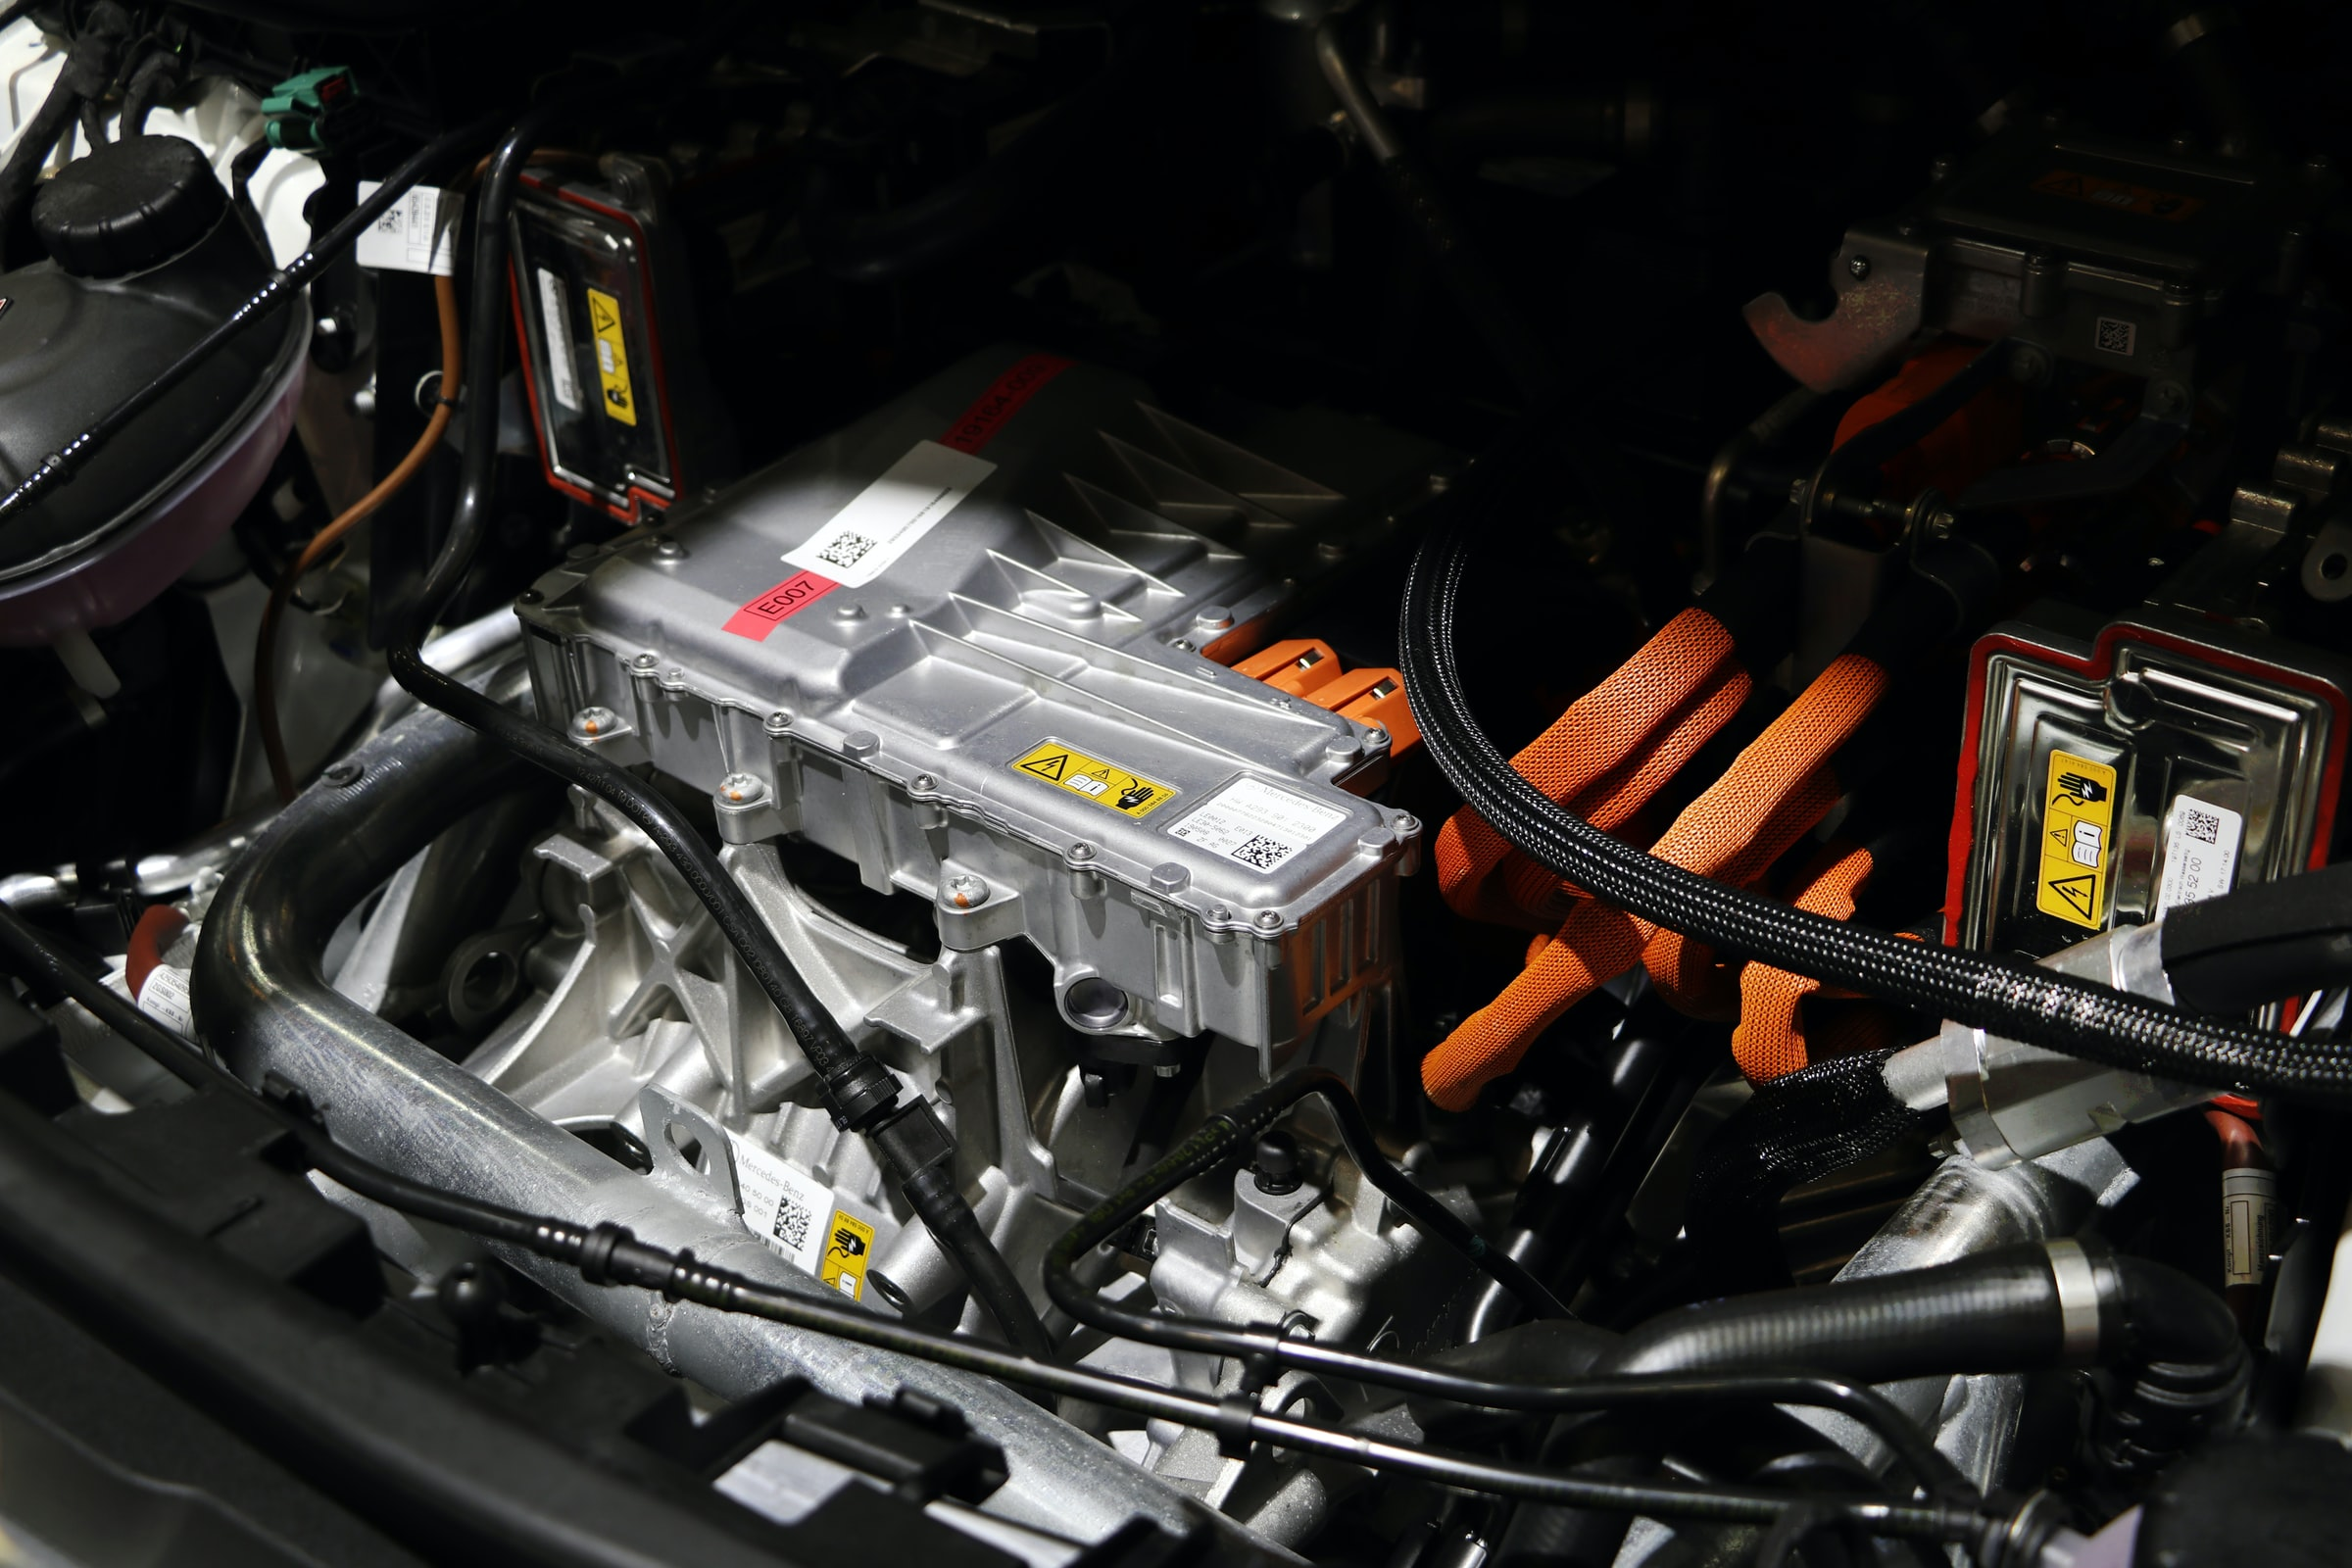 Texas Instruments Helps Electric Vehicles, According To Their Calculations